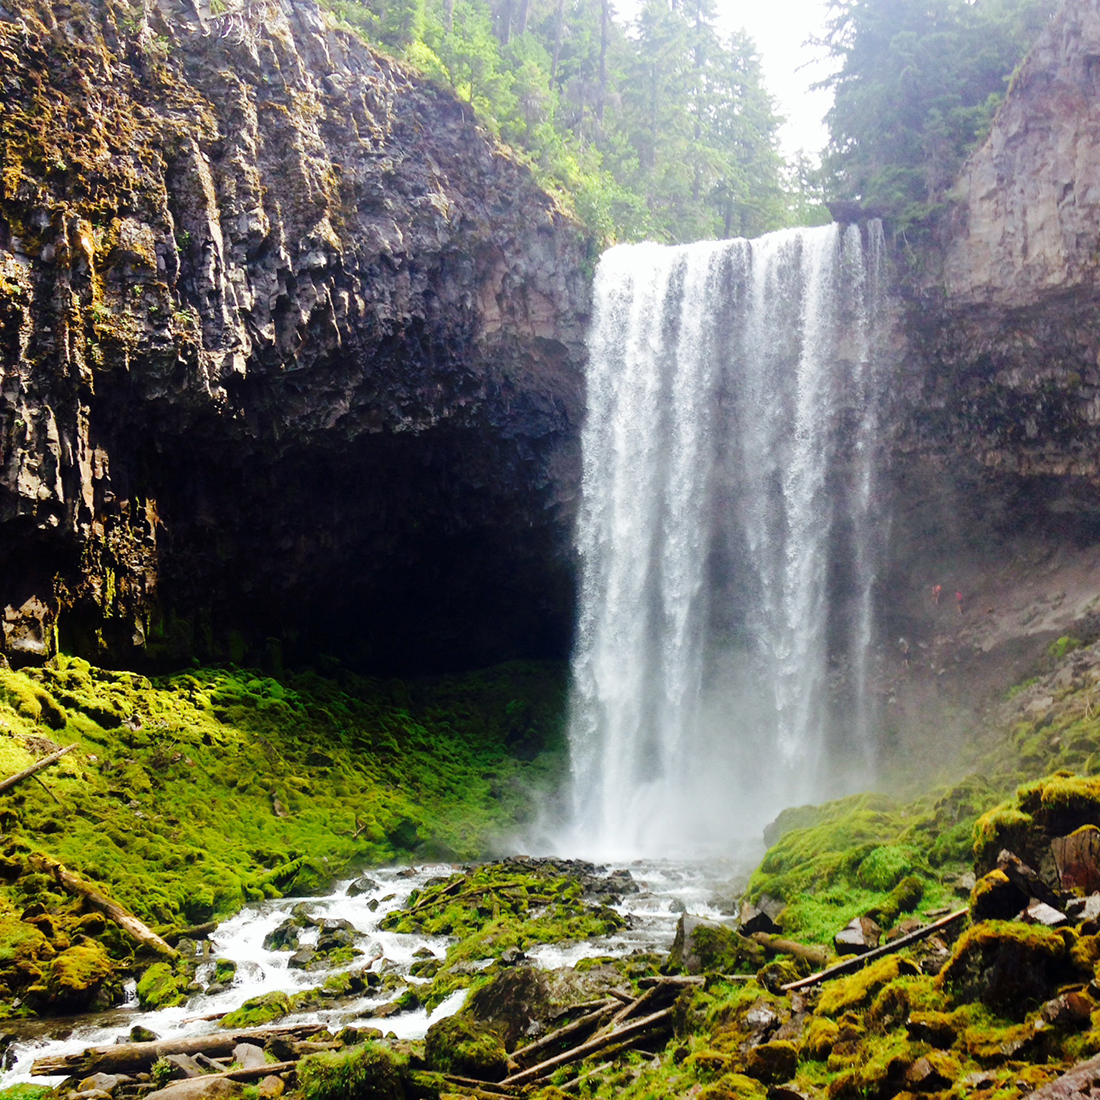 Tamanawas Falls, a two mile hike in through lush forests, is a great family hike that takes you to the gorgeous 100 foot waterfall